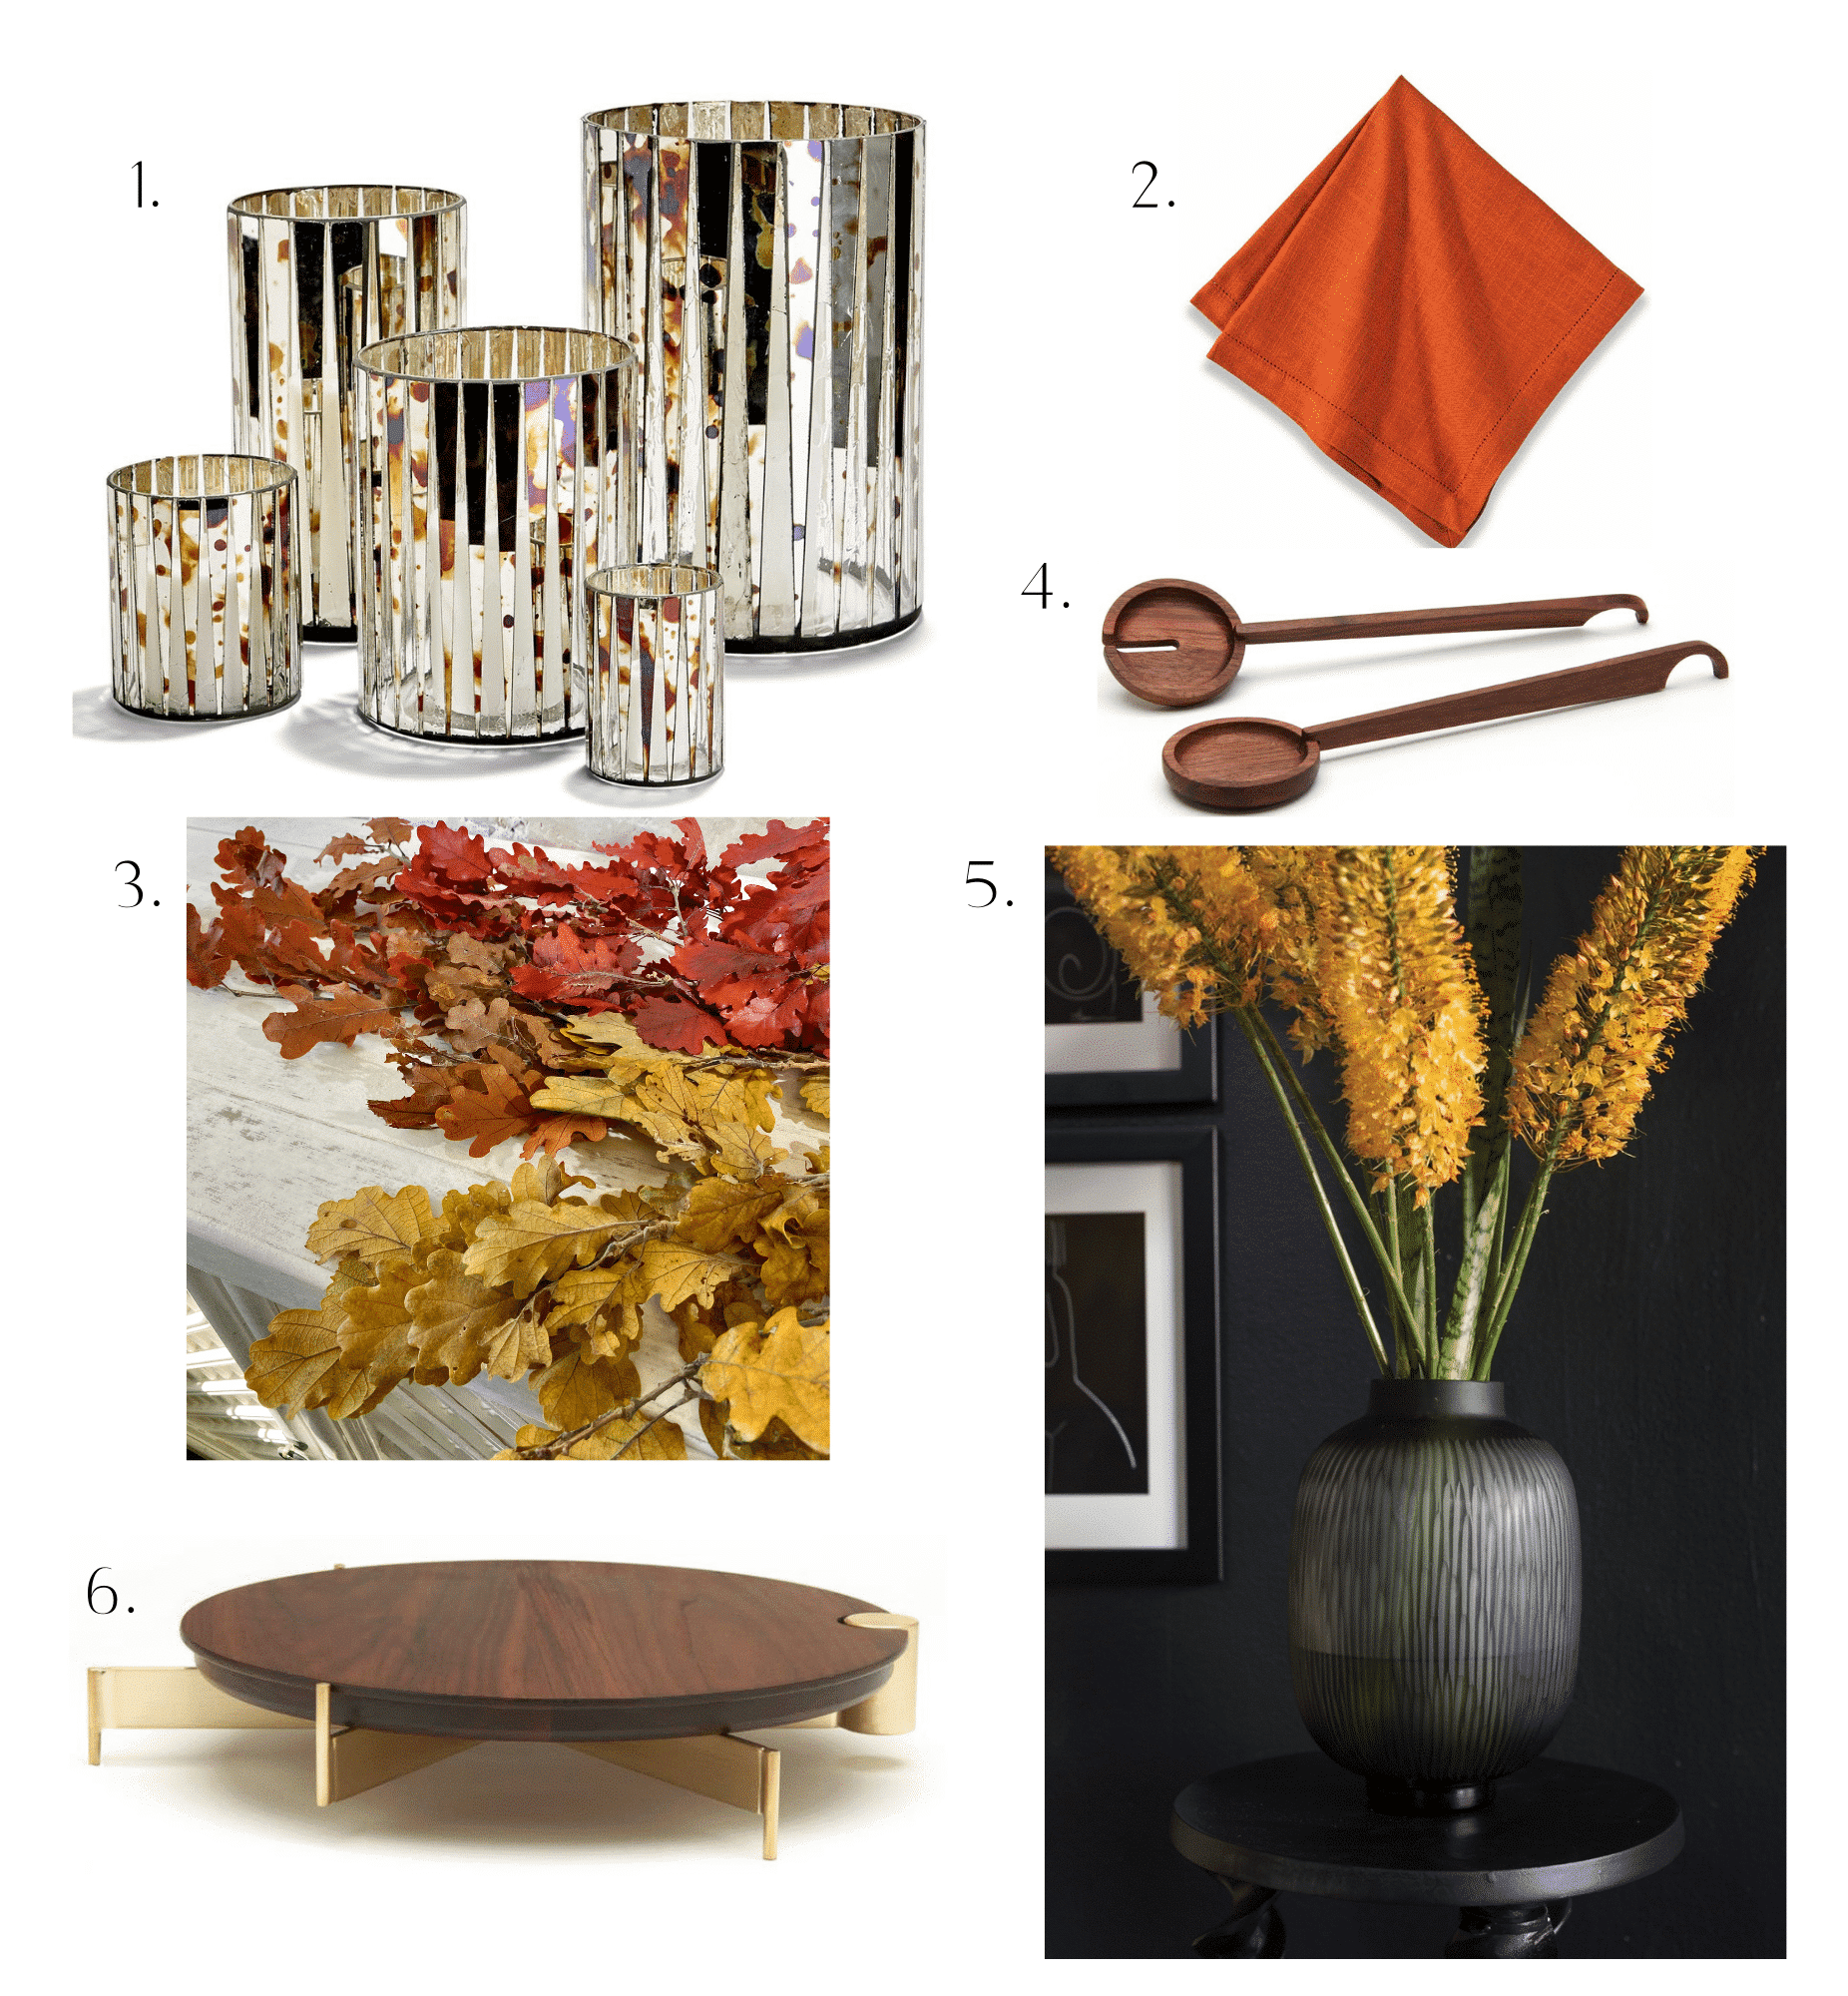 Images shows 6 home items for fall